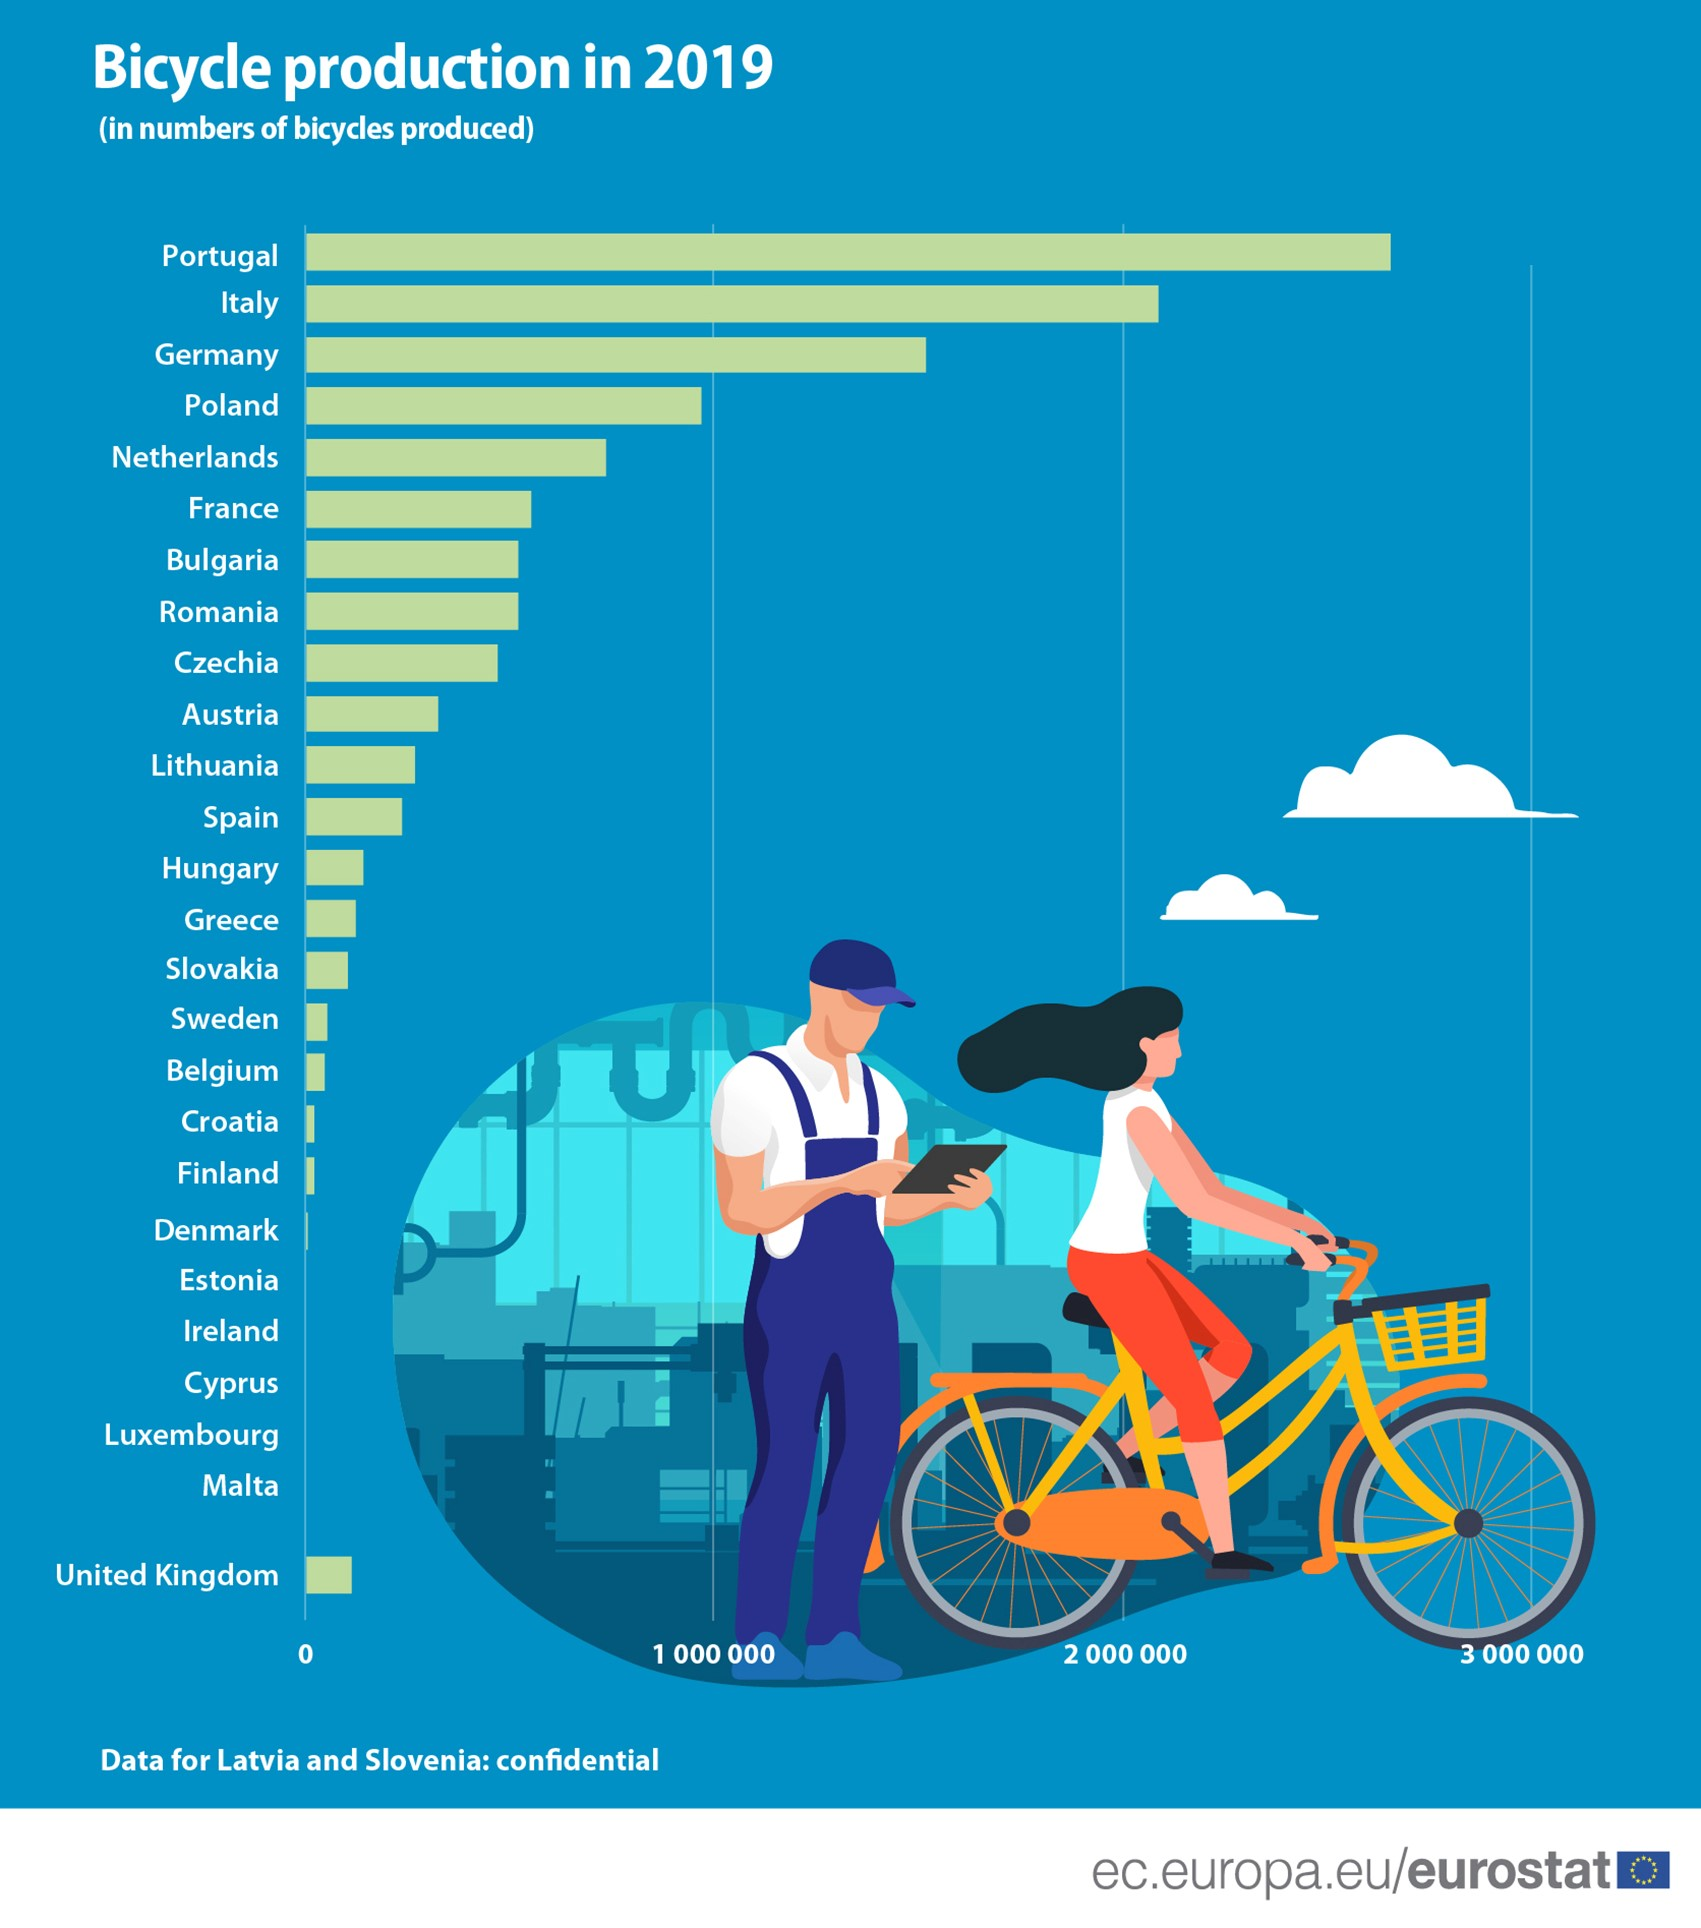 Production of bicycles in the EU 2019